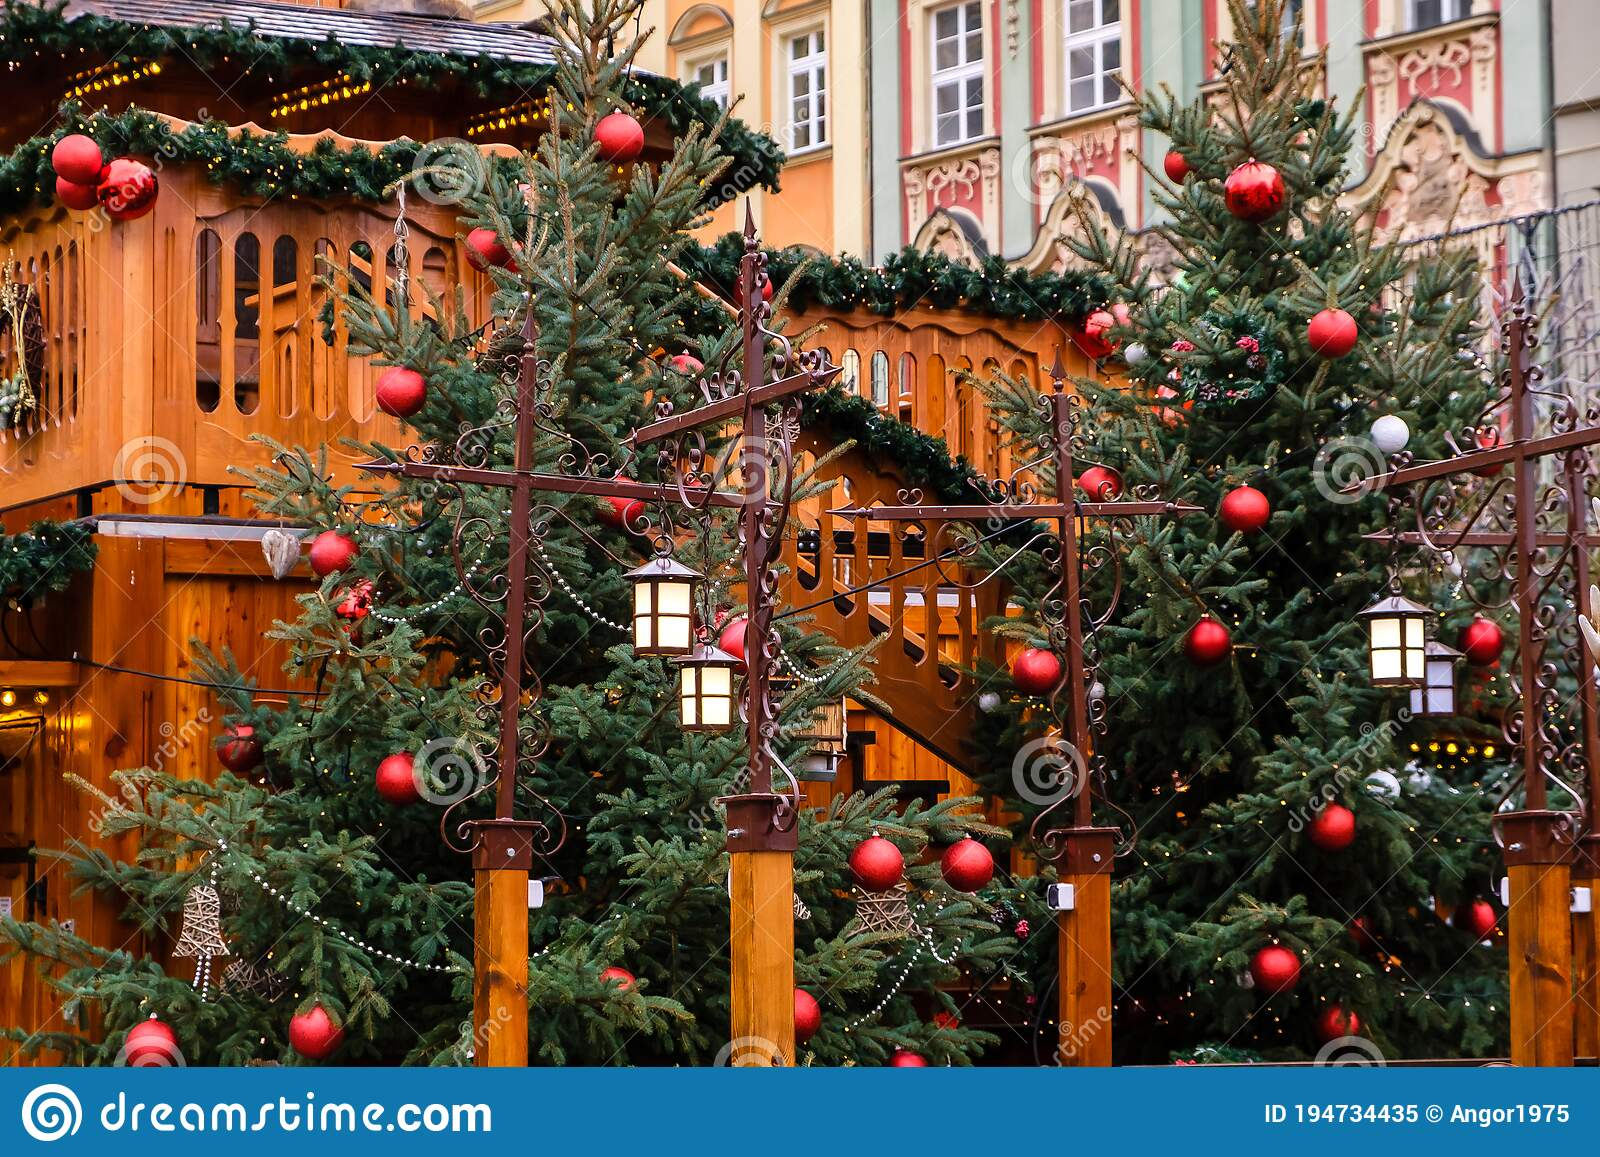 Vintage Street Lanterns And Red Christmas Balls With Led Garlands On Decorated Natural New Year Trees On Festive Christmas Fair On Stock Image Image Of Holiday Lantern 194734435